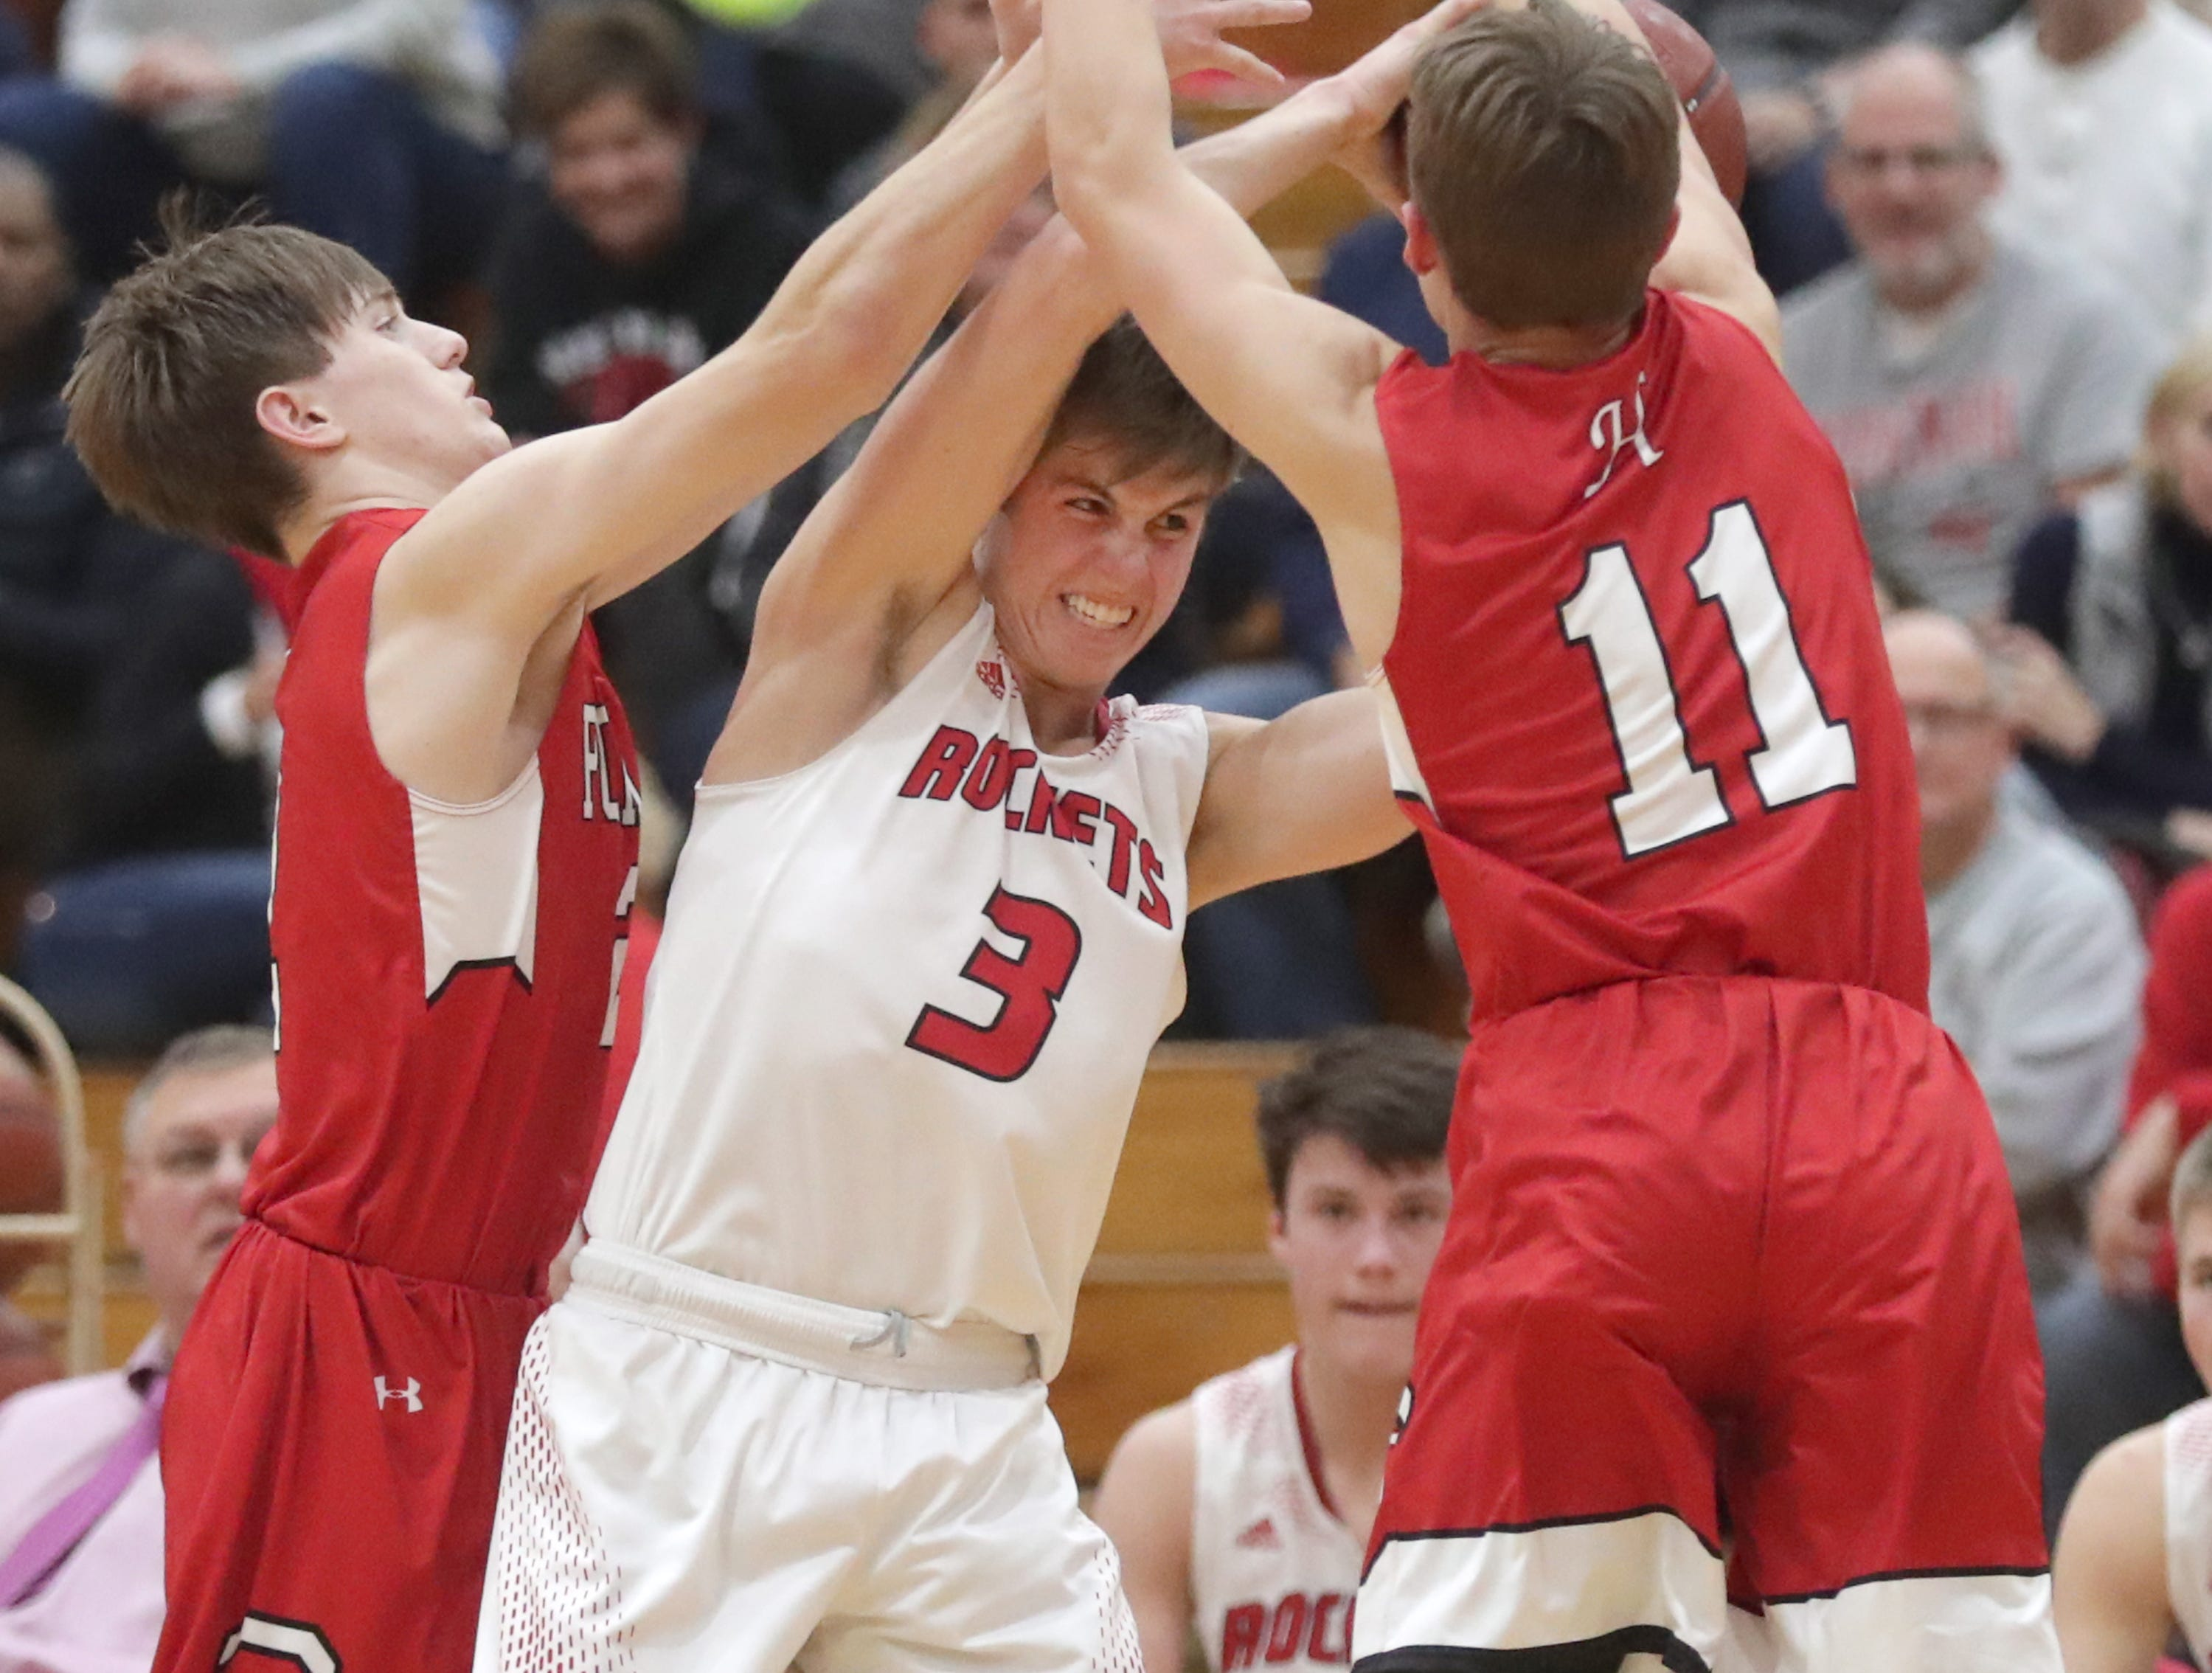 Neenah High School's #3 Sam Dietrich against Hortonville High School's #2 Parker Lawrence, left, and #11 Mitch Tandeski during their Fox Valley Association boys basketball game on Friday, November 30, 2018, in Neenah, Wis. Neenah defeated Hortonville 71 to 67 in overtime.Wm. Glasheen/USA TODAY NETWORK-Wisconsin.